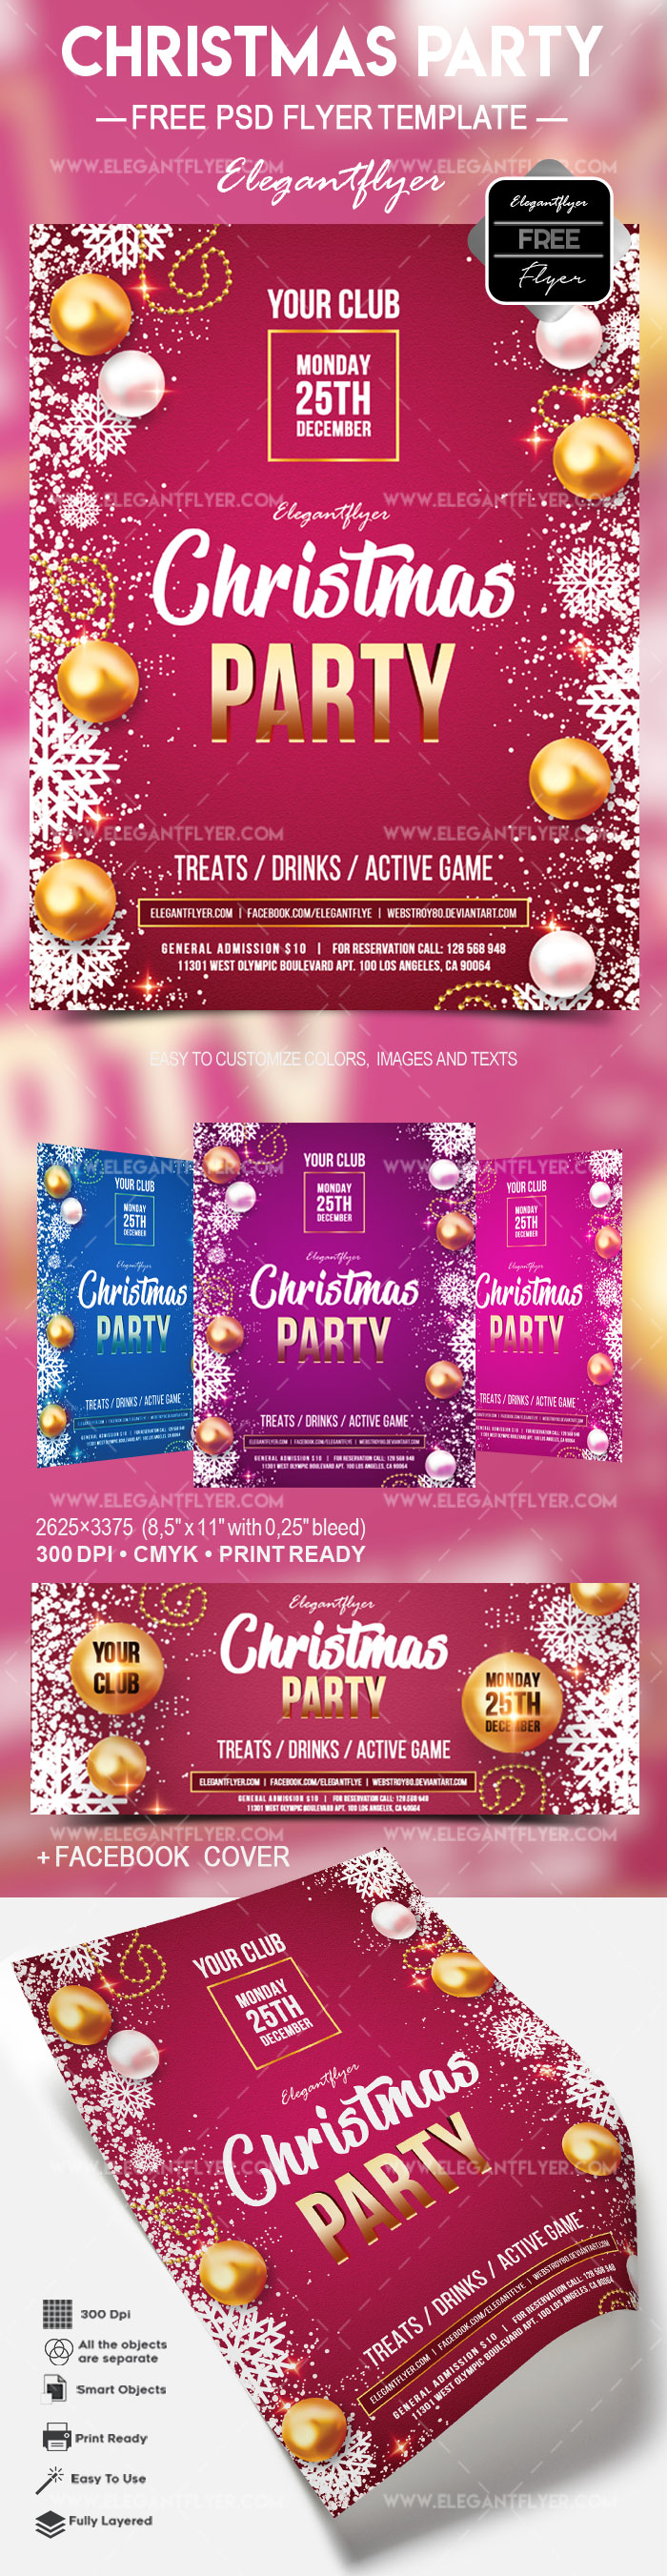 Free Christmas party – Flyer PSD Template